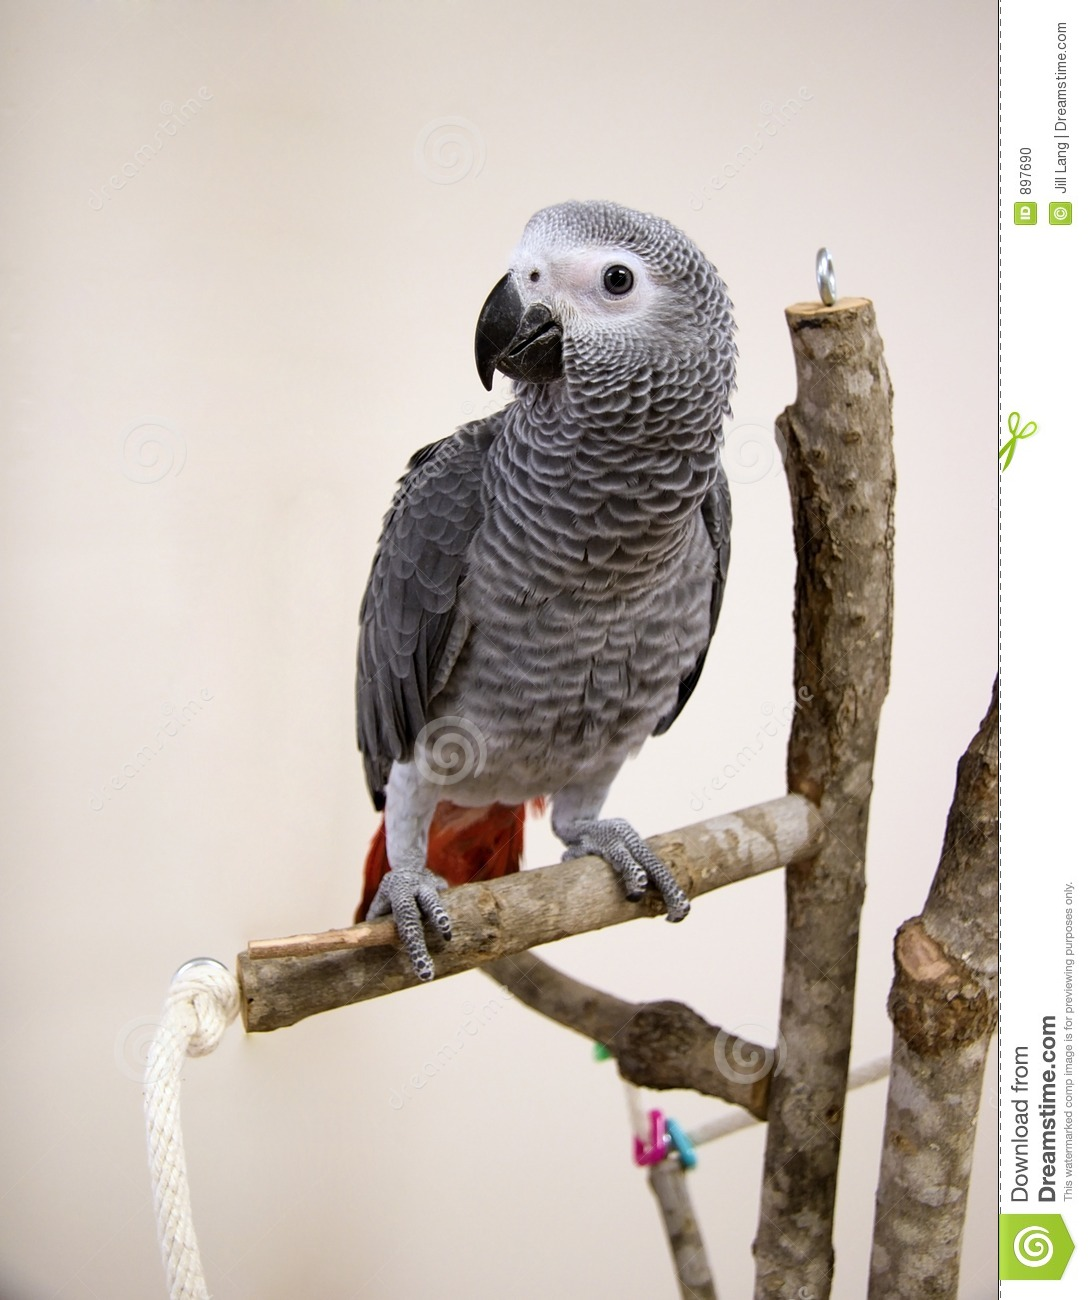 More similar stock images of ` Young African Grey Parrot `